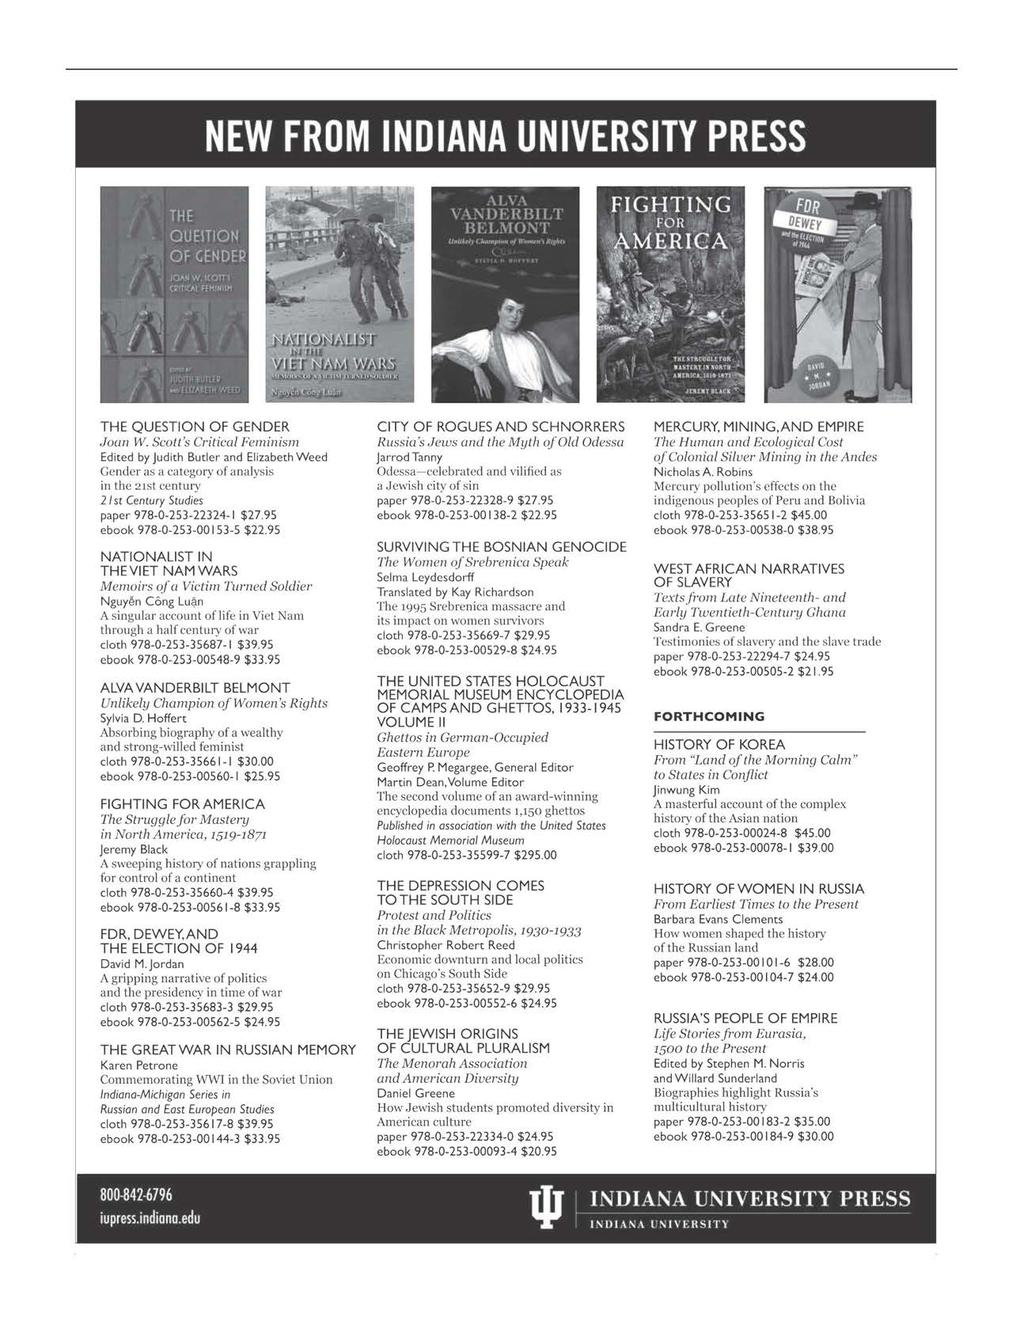 American historical association pdf fandeluxe Images